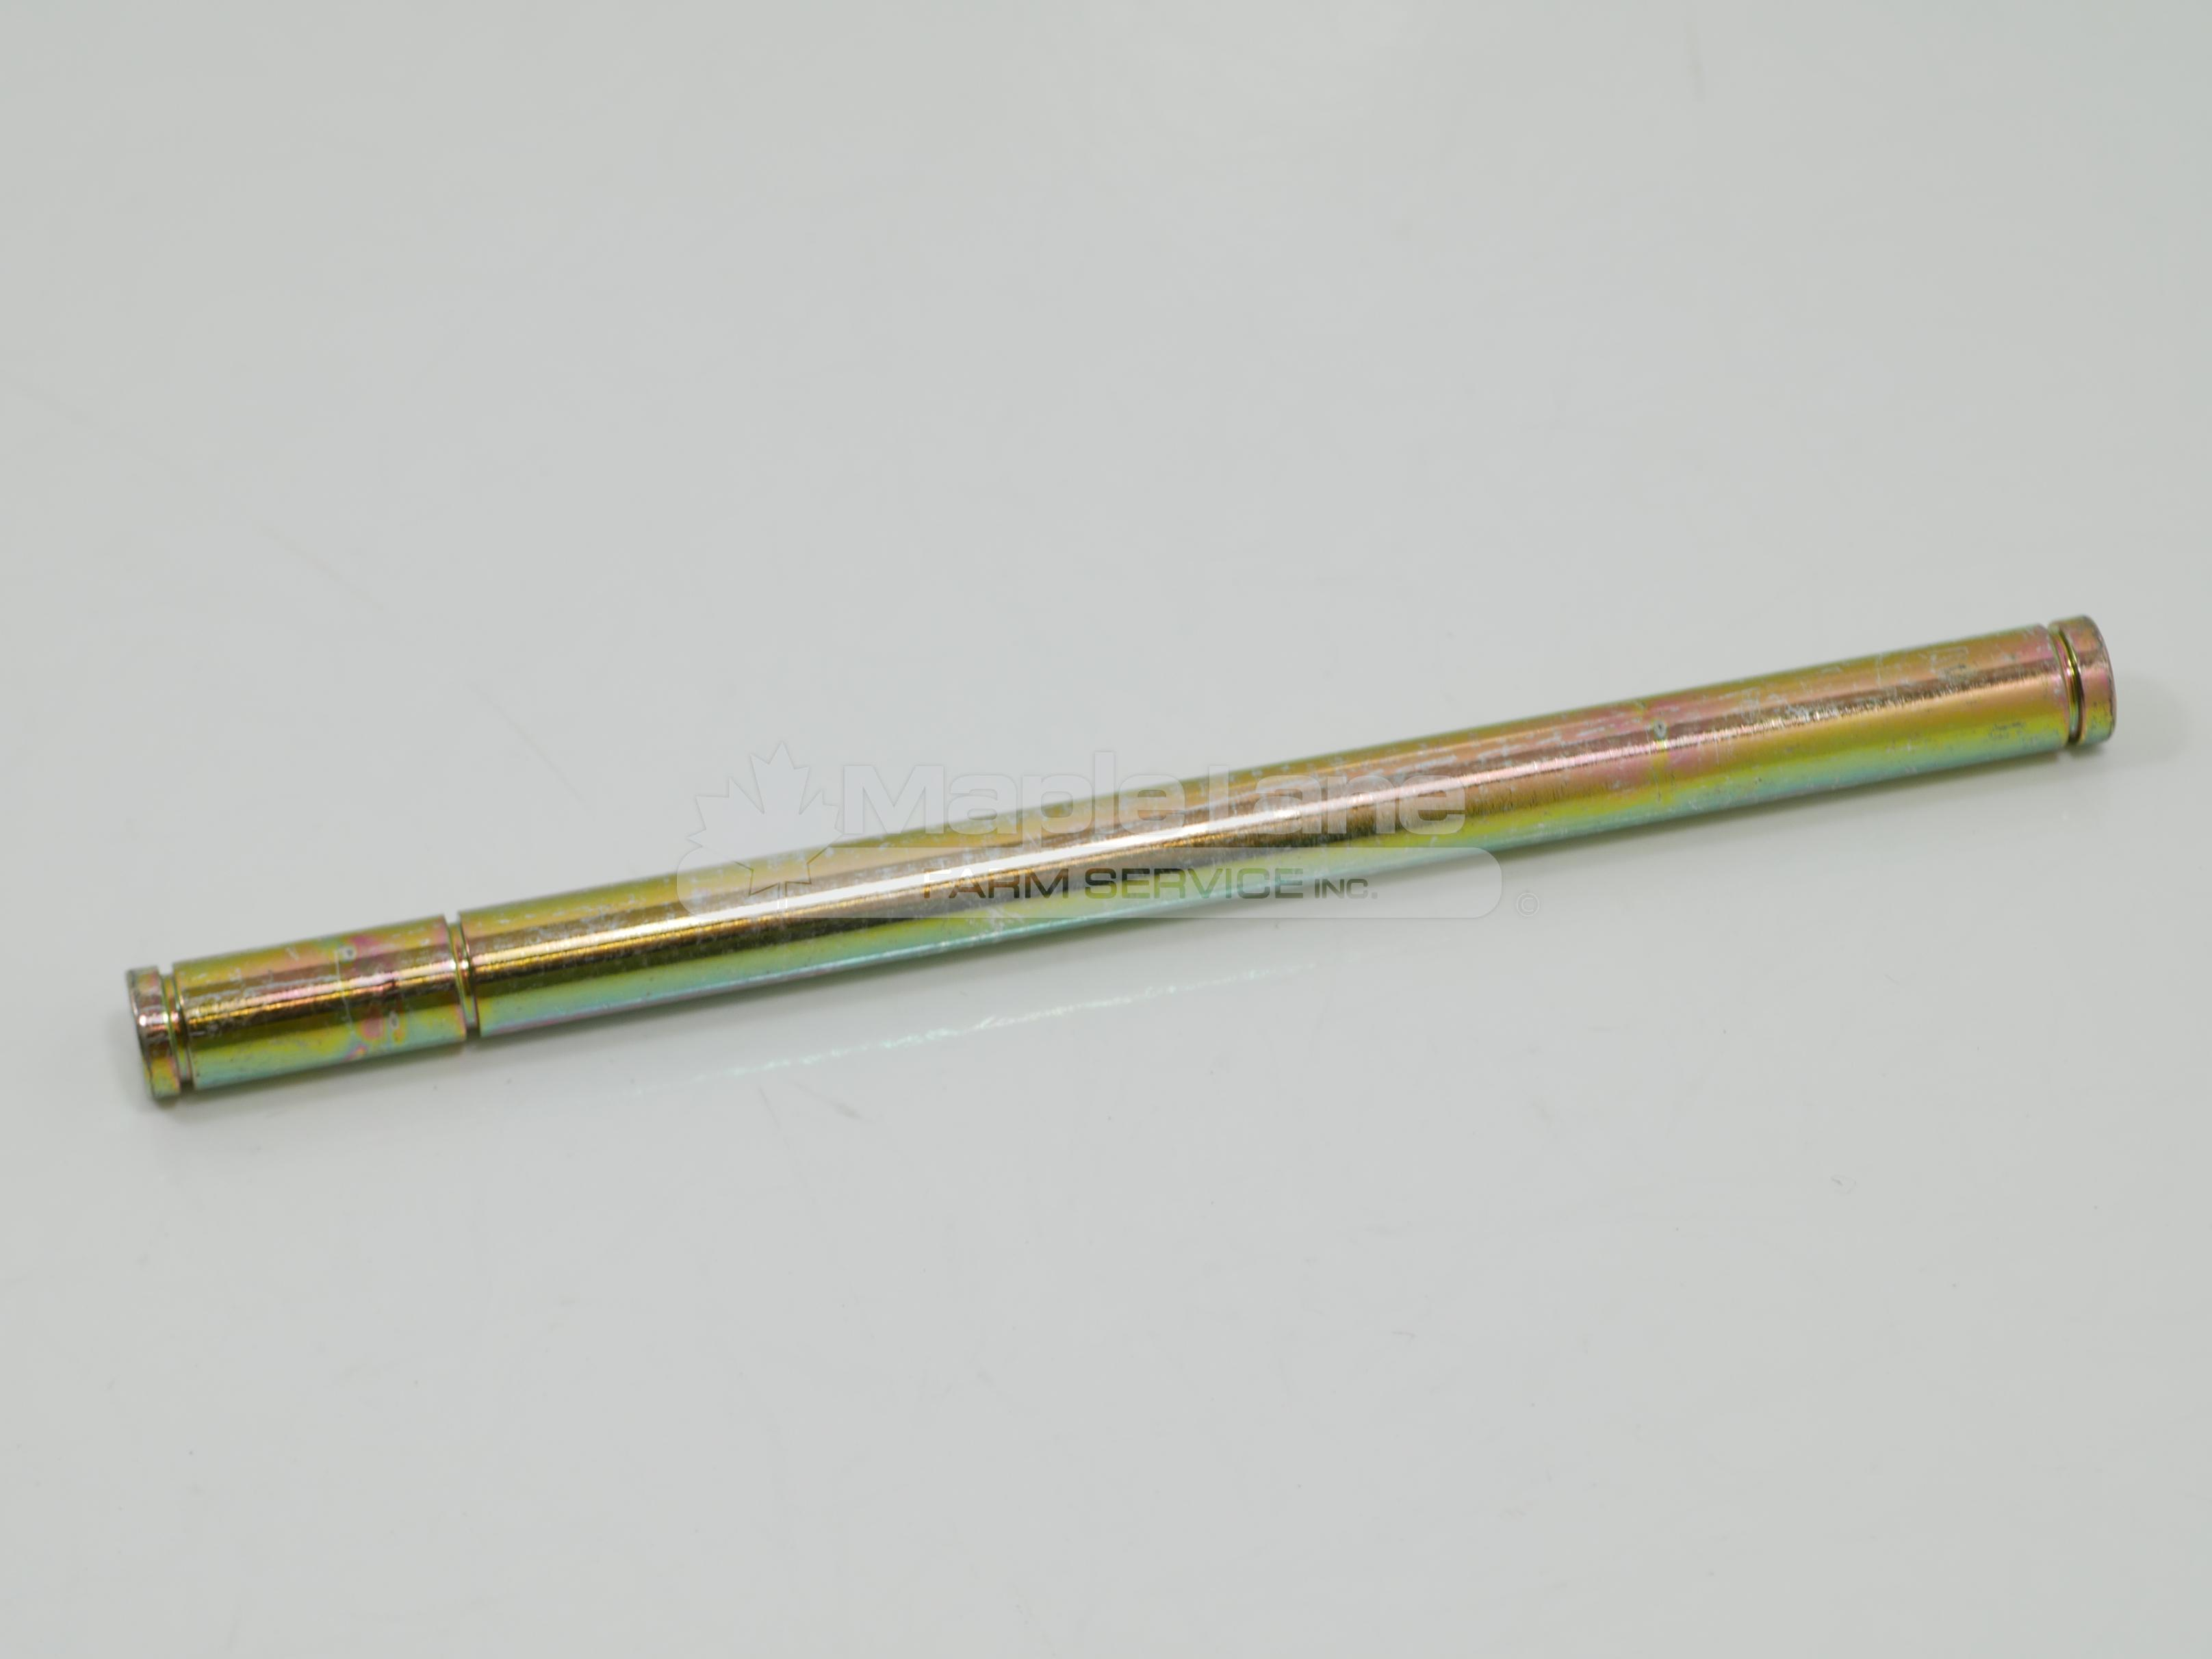 137043 Spring Guide Rod